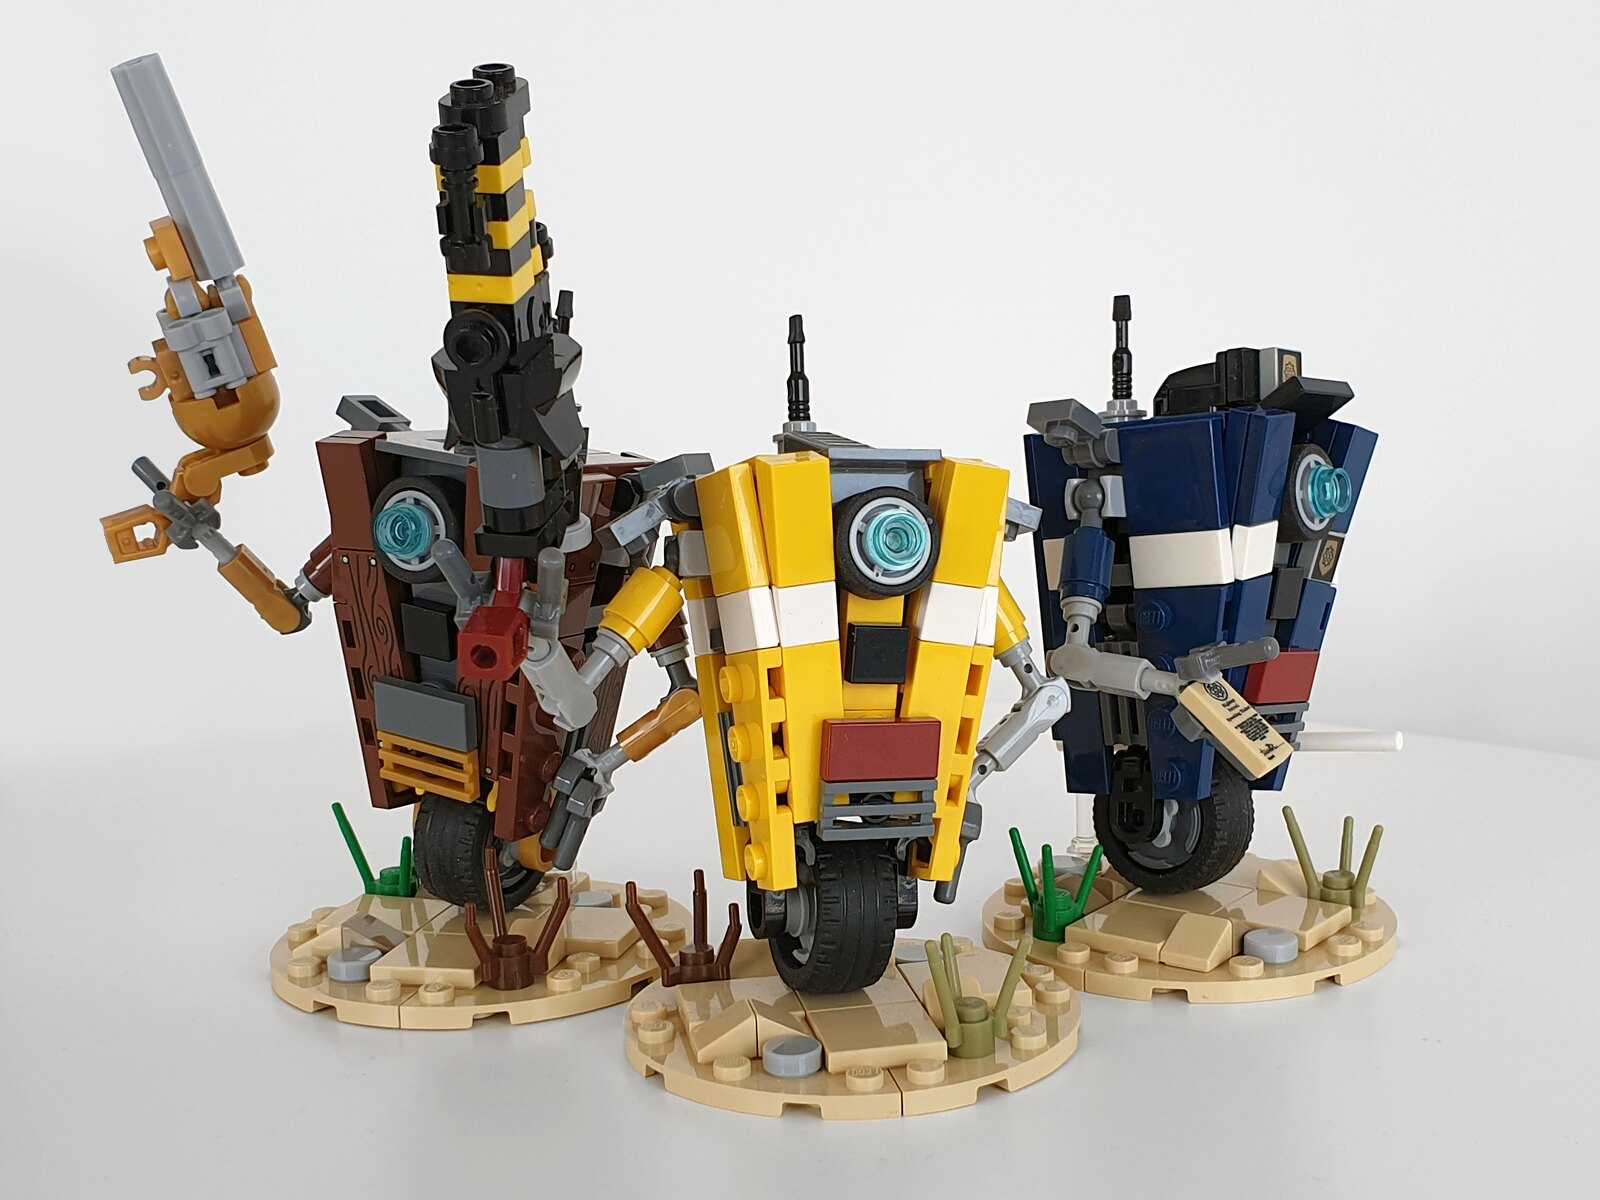 Borderlands Claptrap family - 2.0!